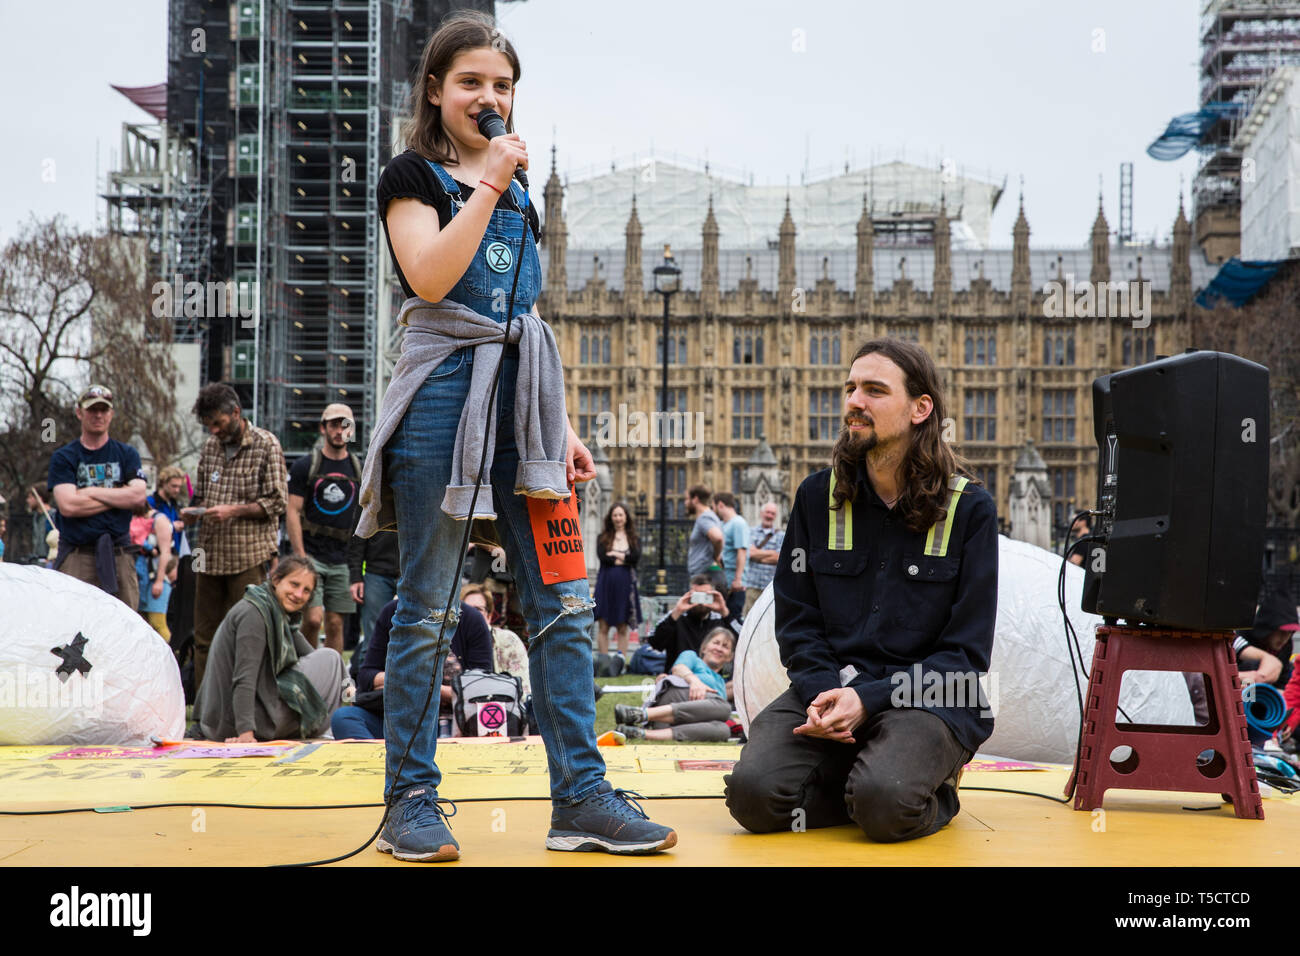 London, UK. 23rd April 2019. A 12-year-old school striker addresses climate change activists from Extinction Rebellion at an assembly in Parliament Square to discuss the preparation and delivery of activists' letters requesting meetings to discuss climate change with Members of Parliament. Credit: Mark Kerrison/Alamy Live News - Stock Image